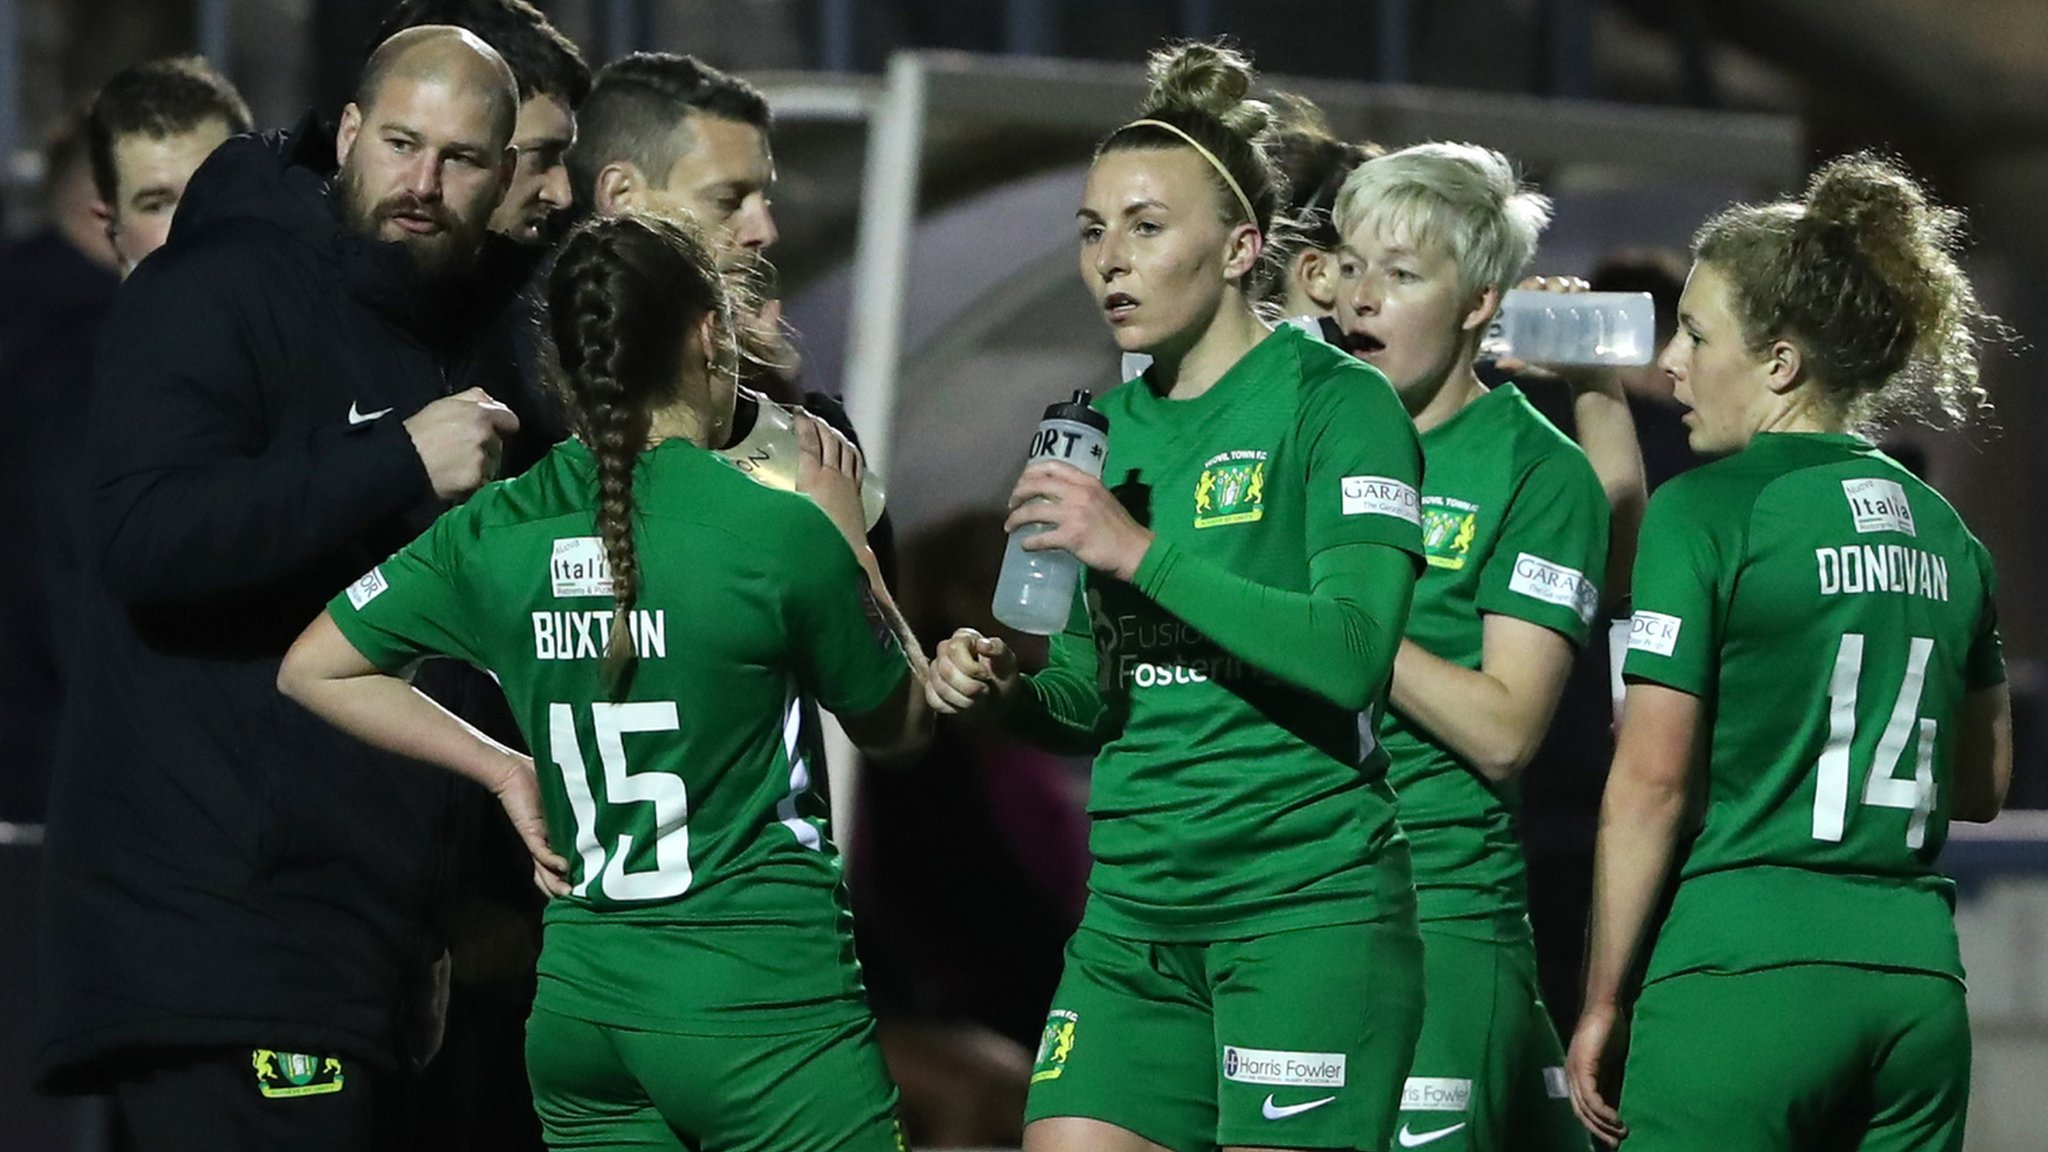 Yeovil Town Ladies 0-5 Reading: Glovers relegated from Women's Super League